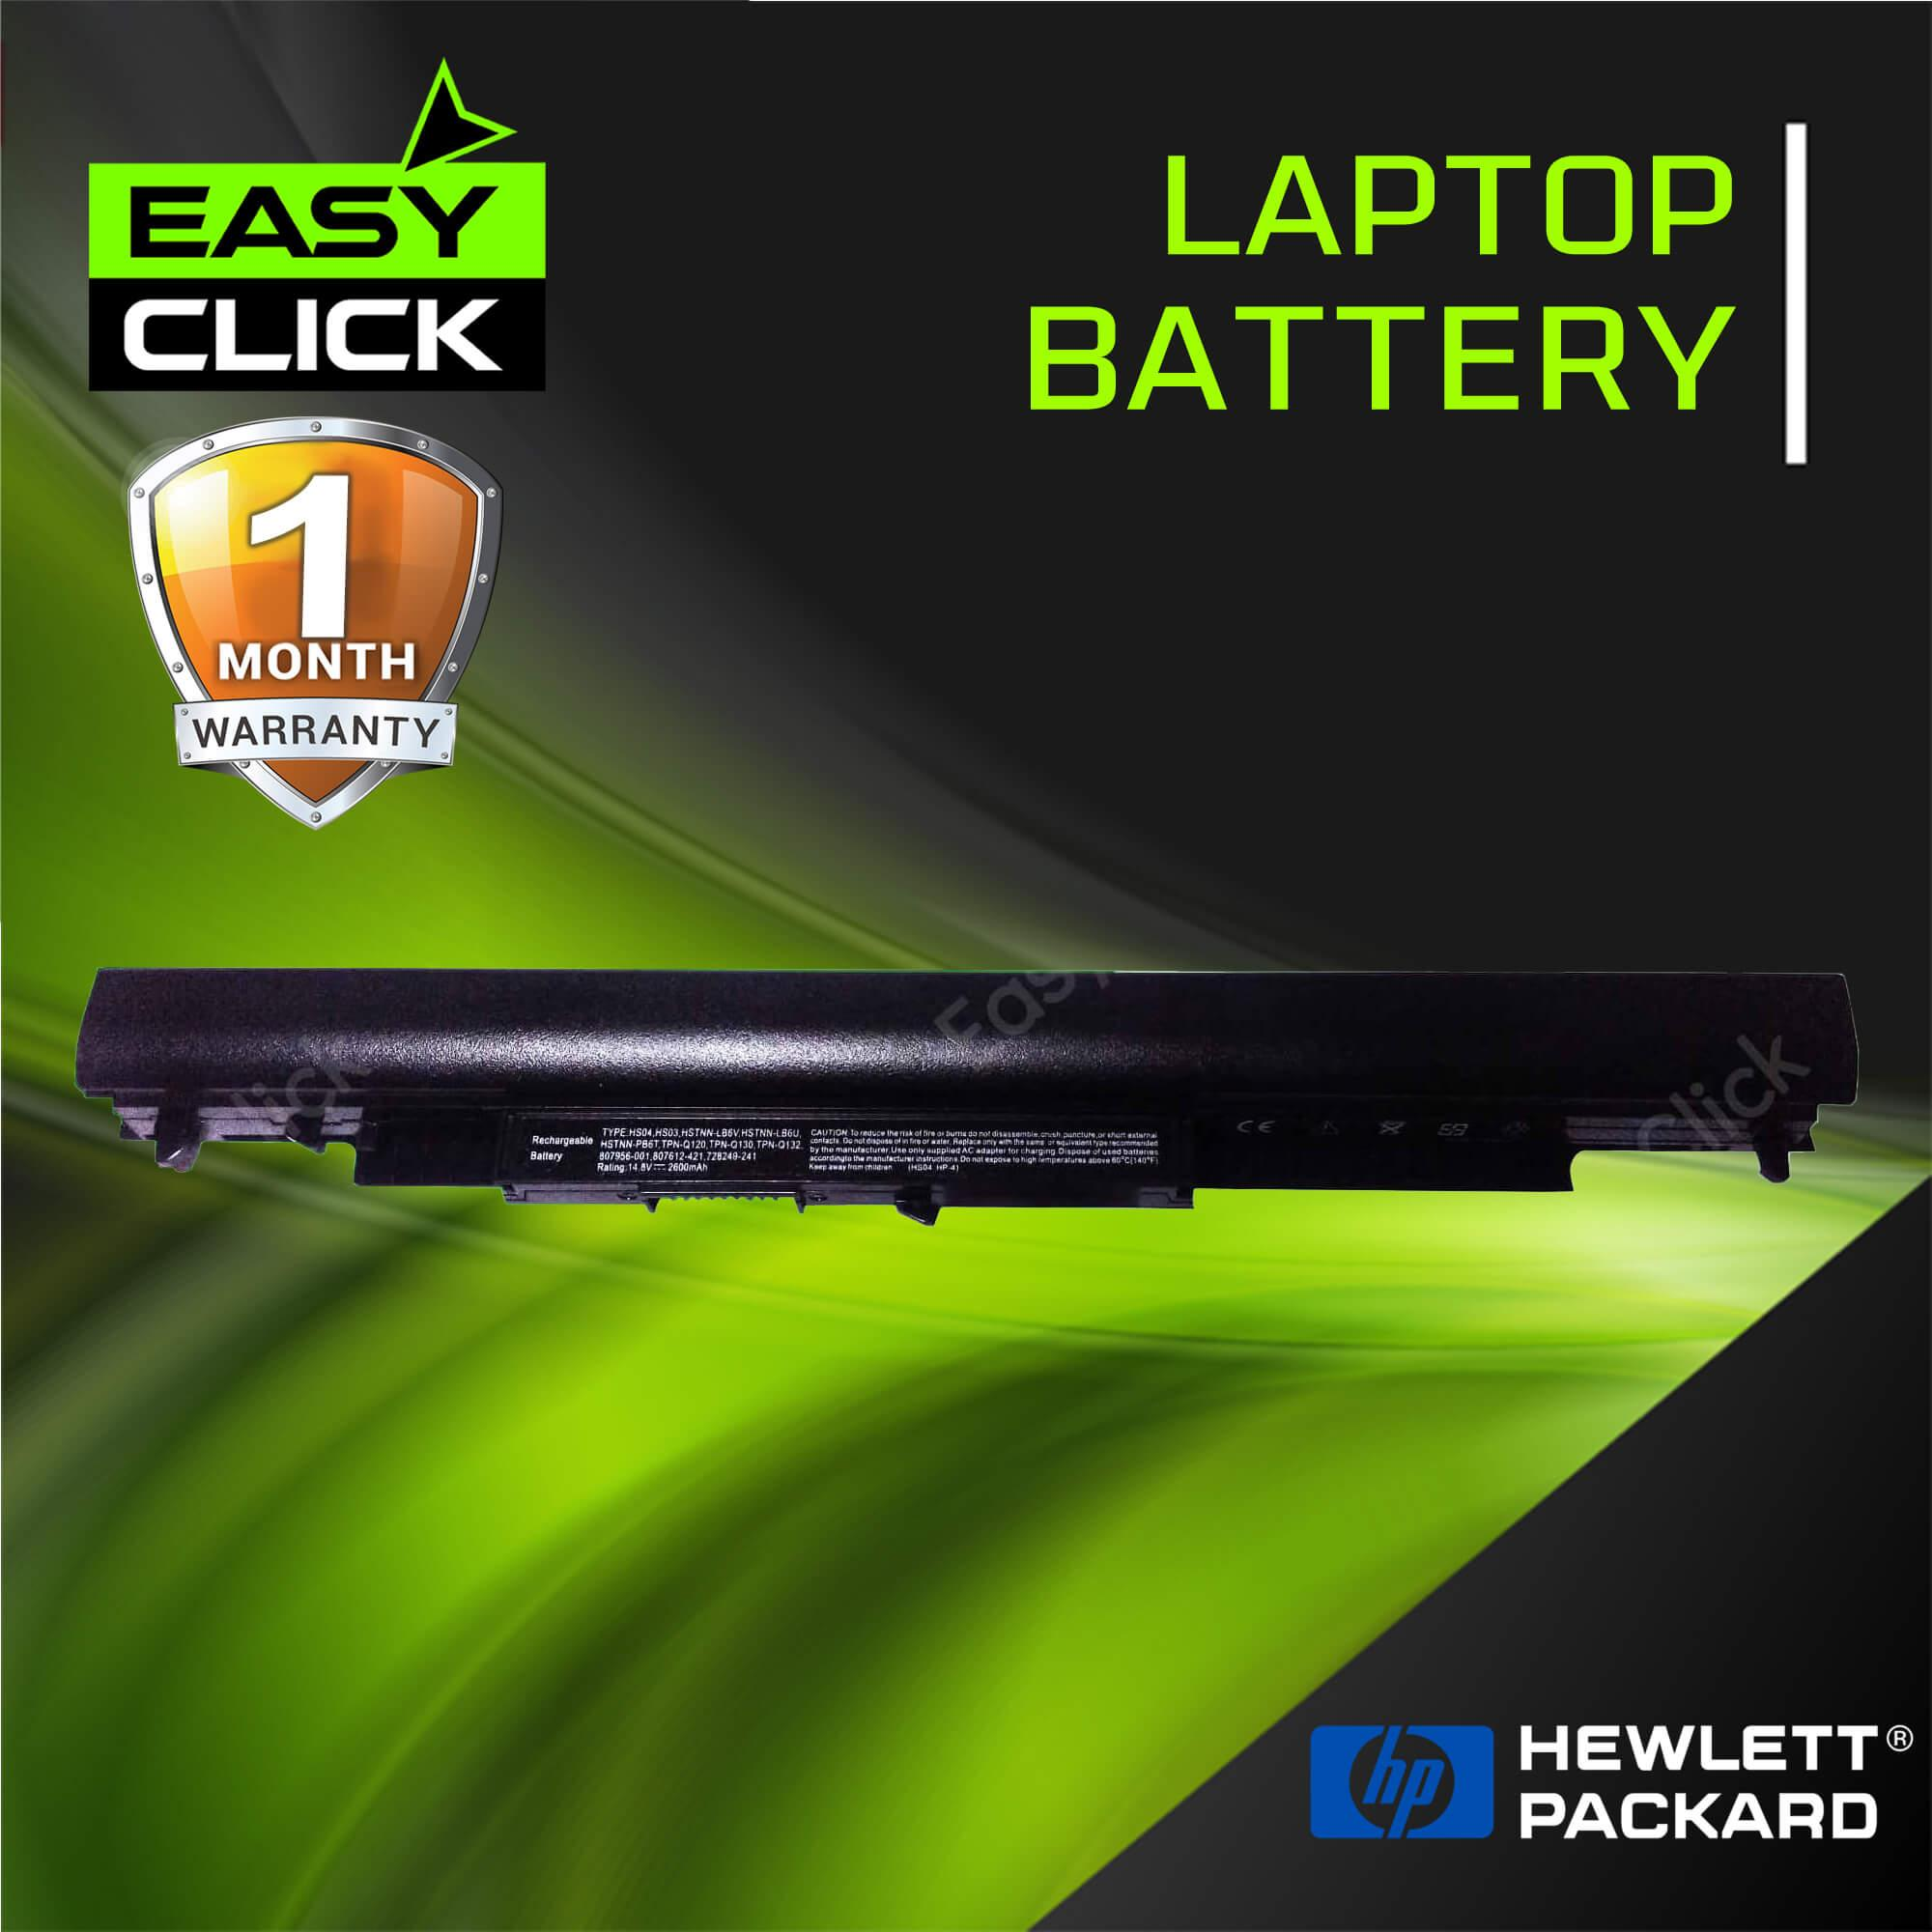 HP Philippines - HP Computer Batteries for sale - prices & reviews